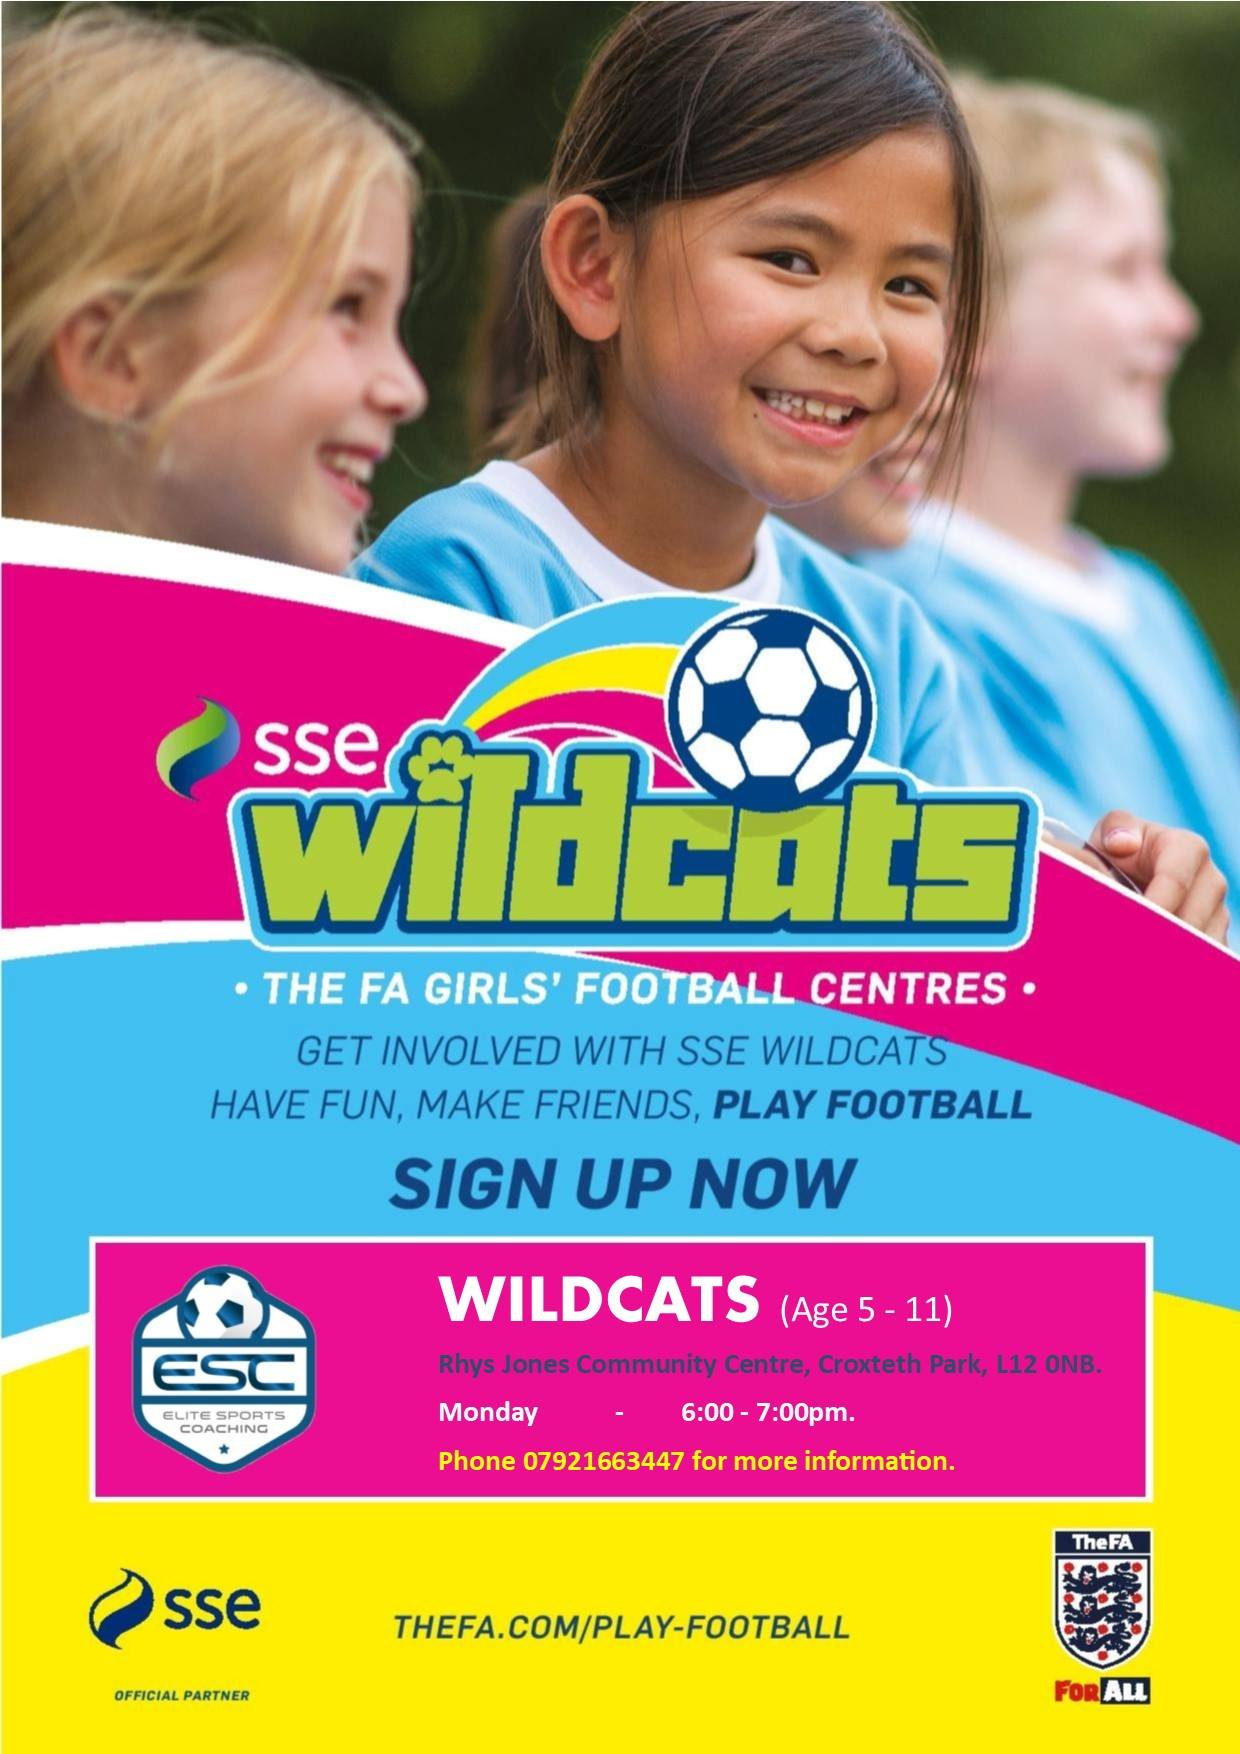 Wildcats girls football at Rhys Jones Community Centre Croxteth Park, Liverpool